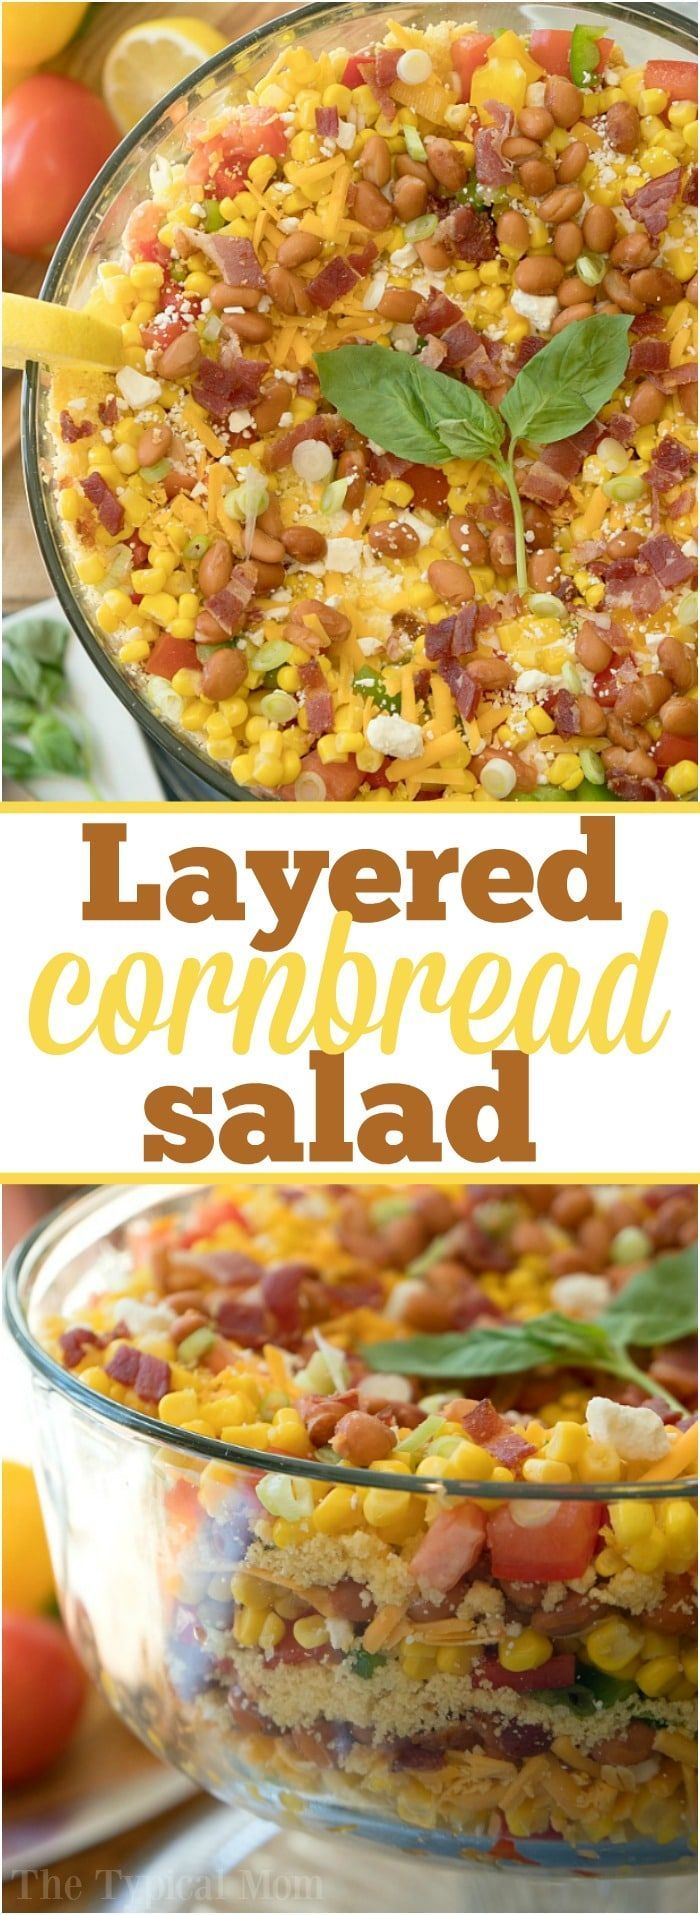 This easy layered cornbread salad recipe is a perfect side dish during the holidays or a barbecue! Layers of corn, cheese and more make it irresistible! AD #cornbread #salad #sidedish #corn #layered via @thetypicalmom